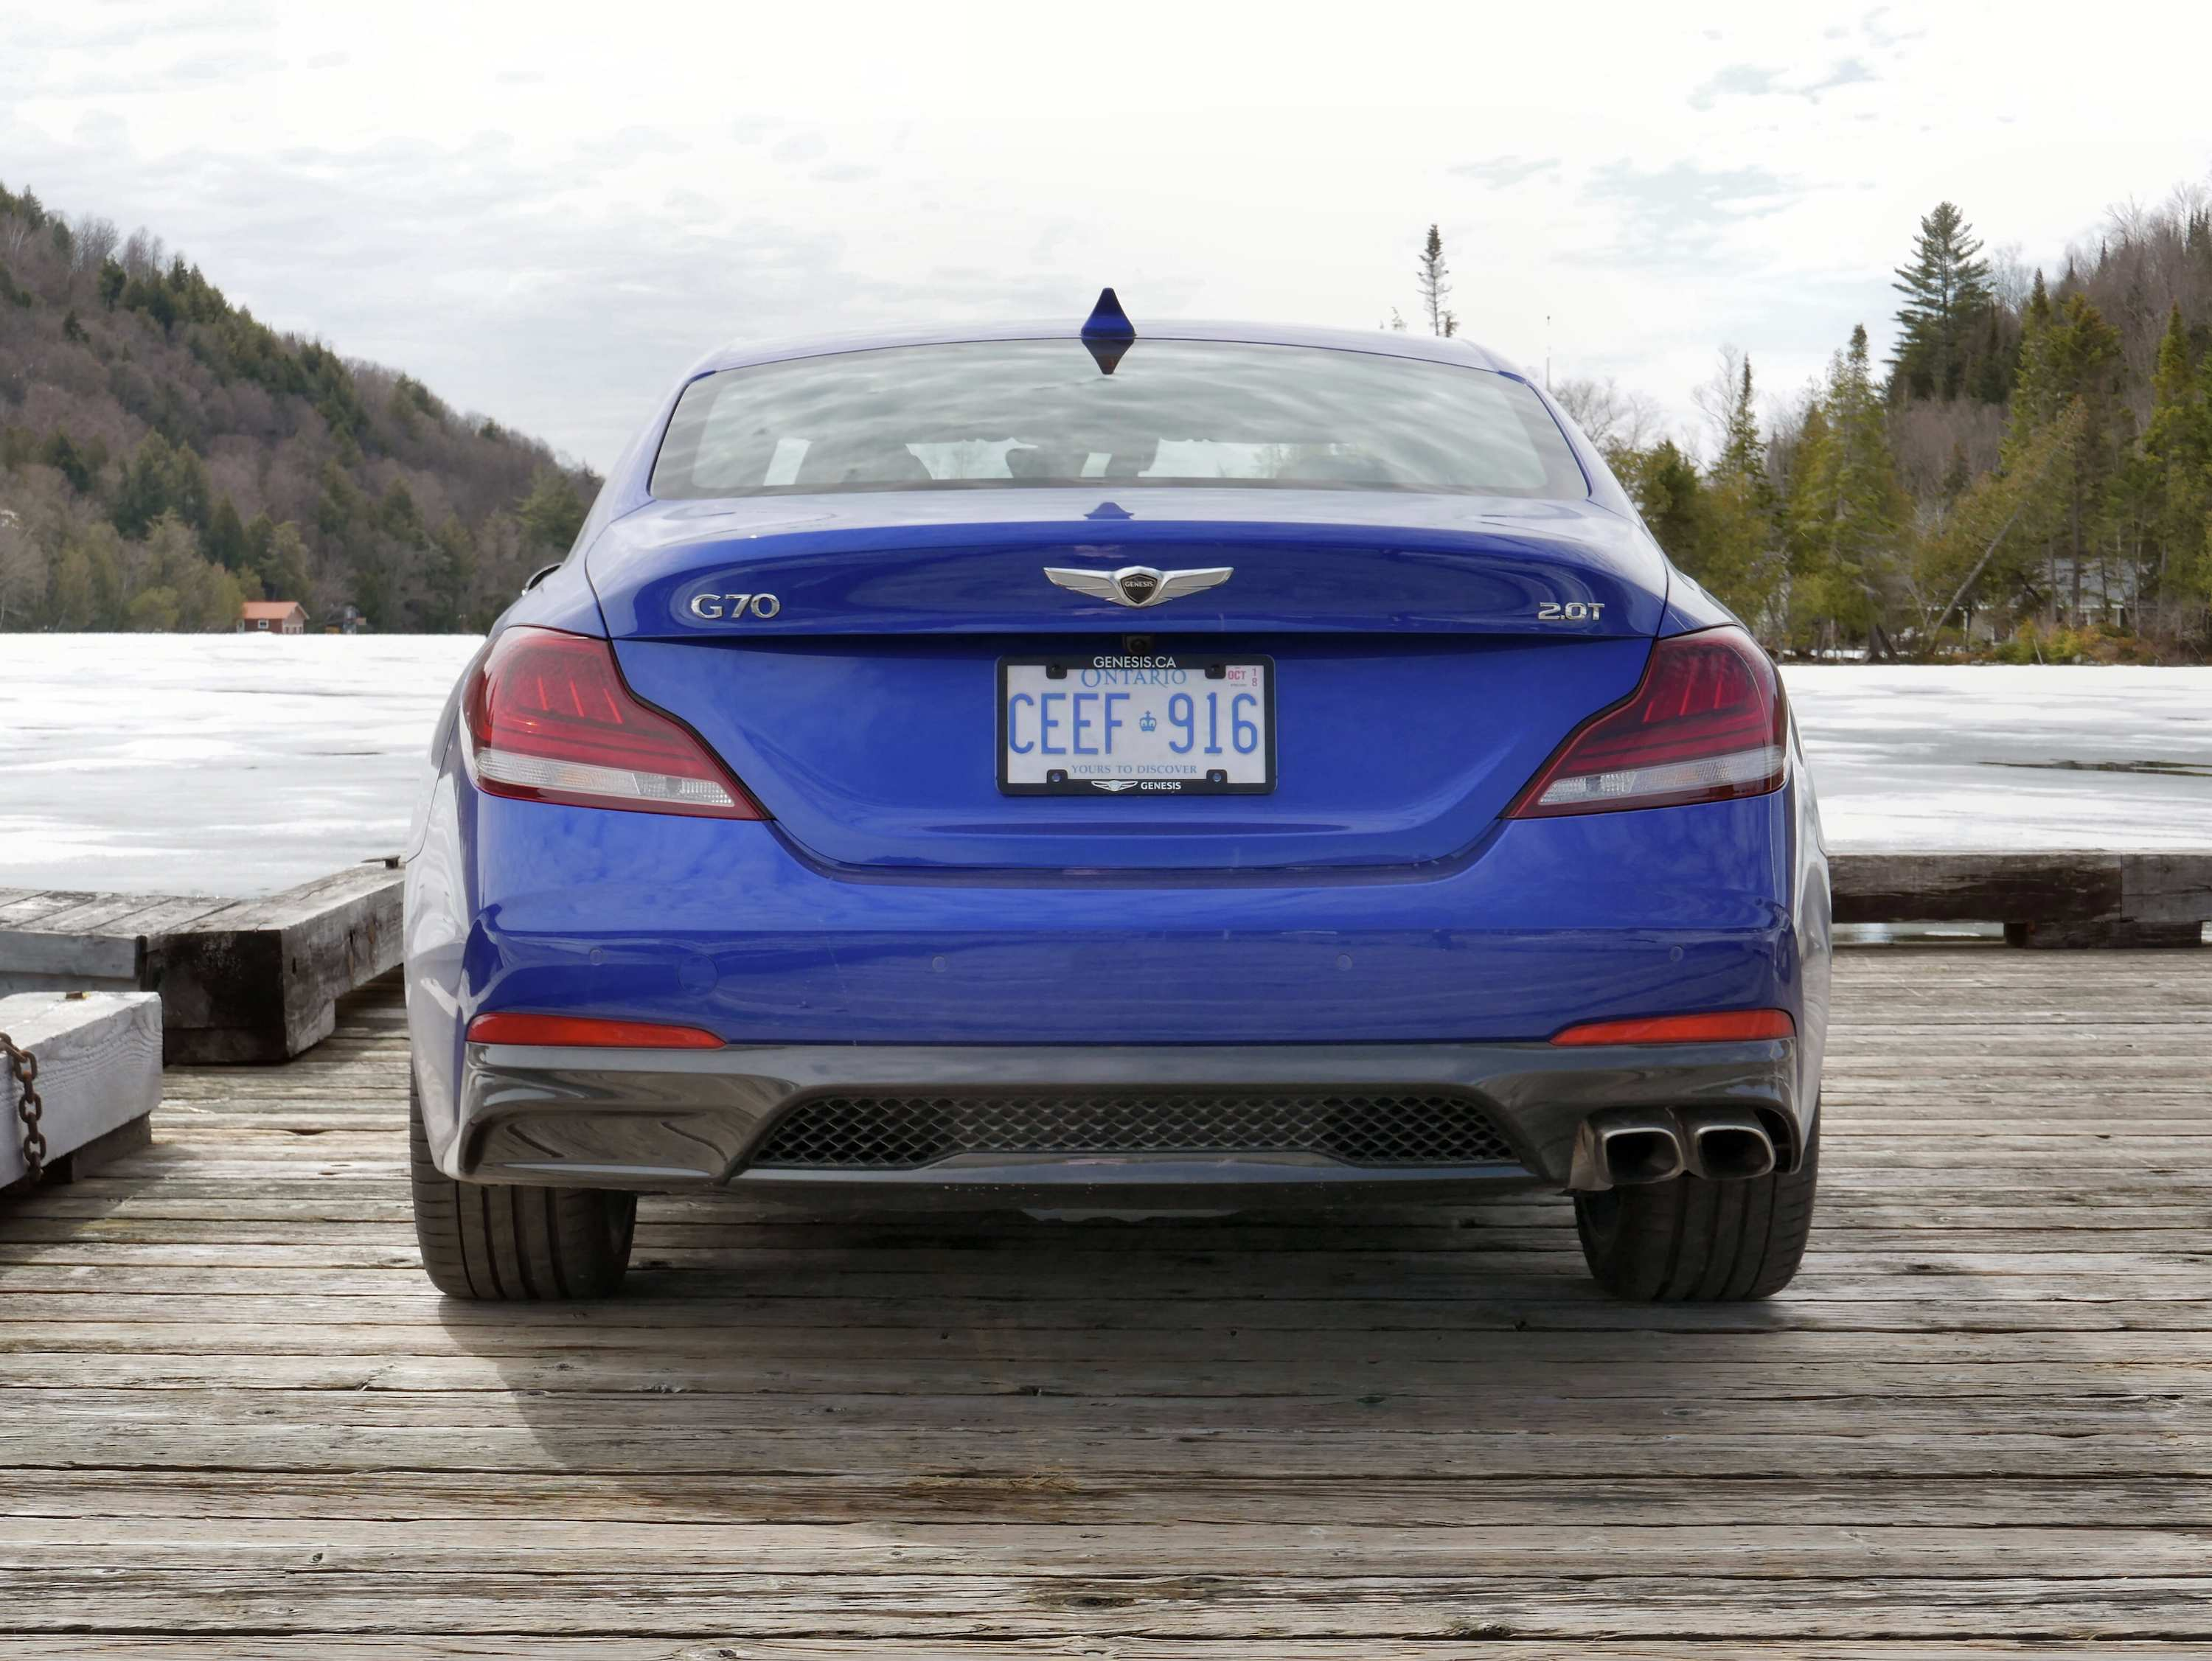 79 Great 2019 Genesis G70 Review Picture by 2019 Genesis G70 Review